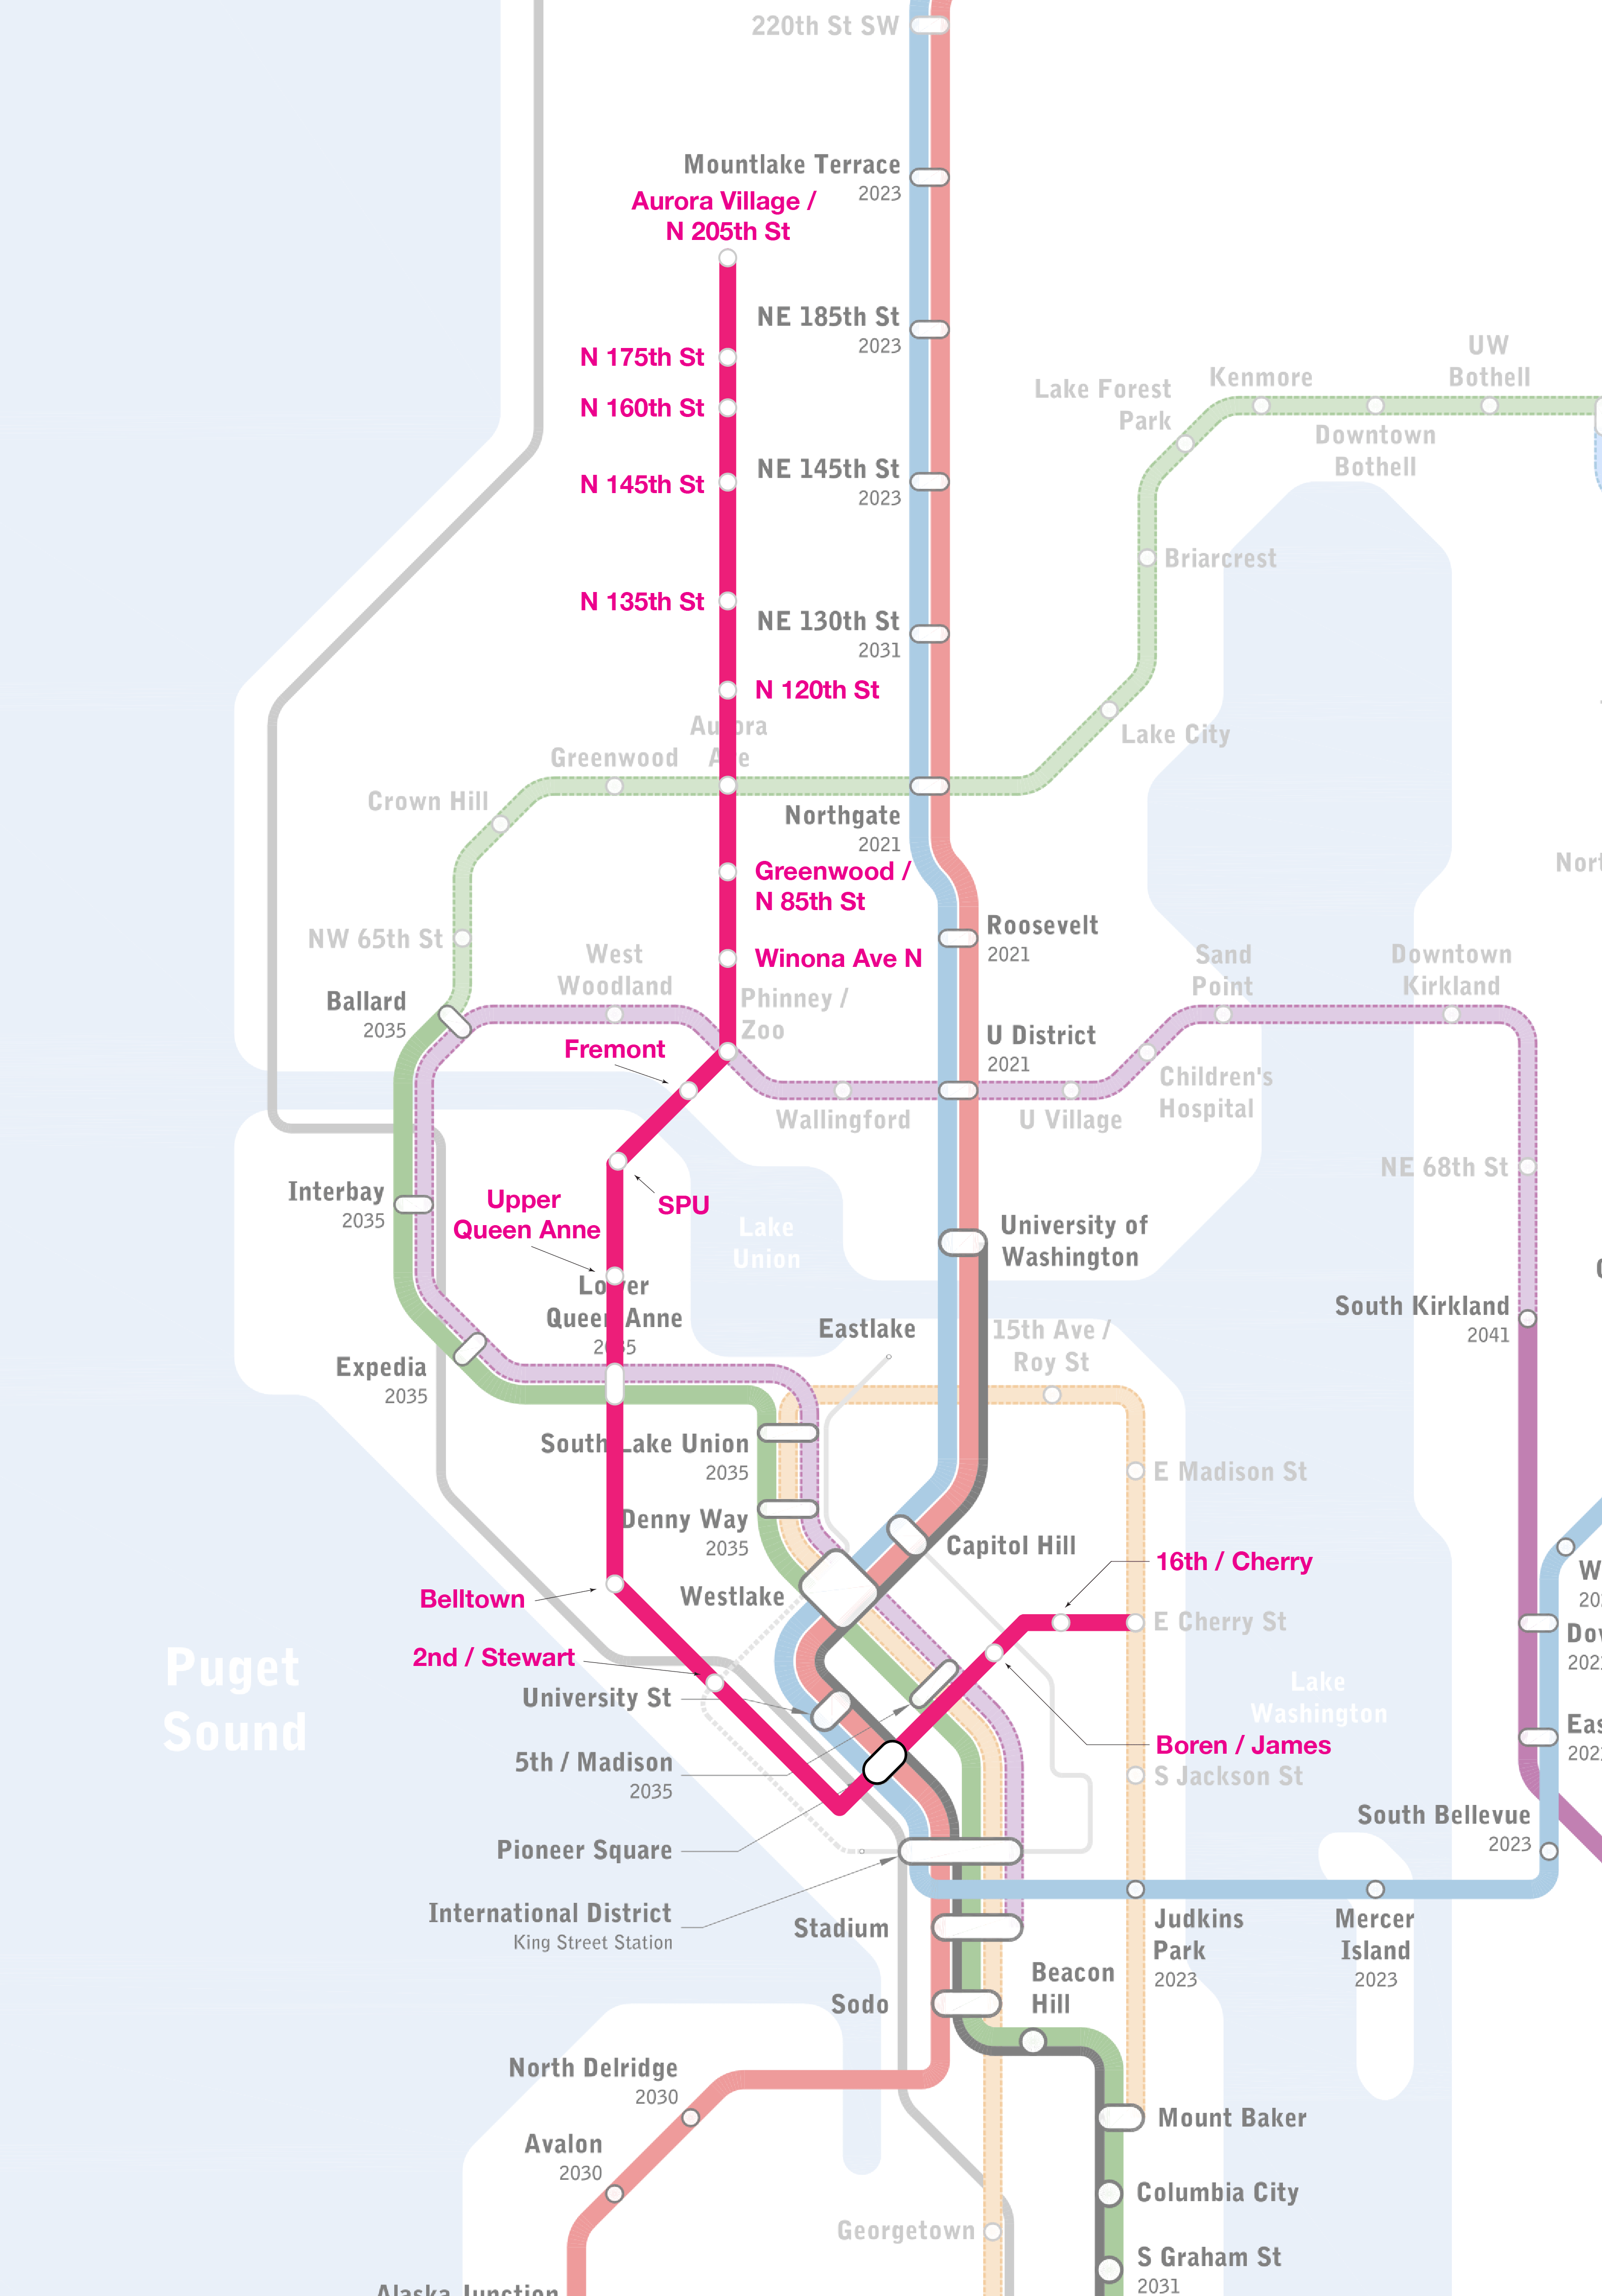 Proposed 2nd Ave Subway Map.Building St4 The Case For Upgrading Rapidride E To Rail The Urbanist